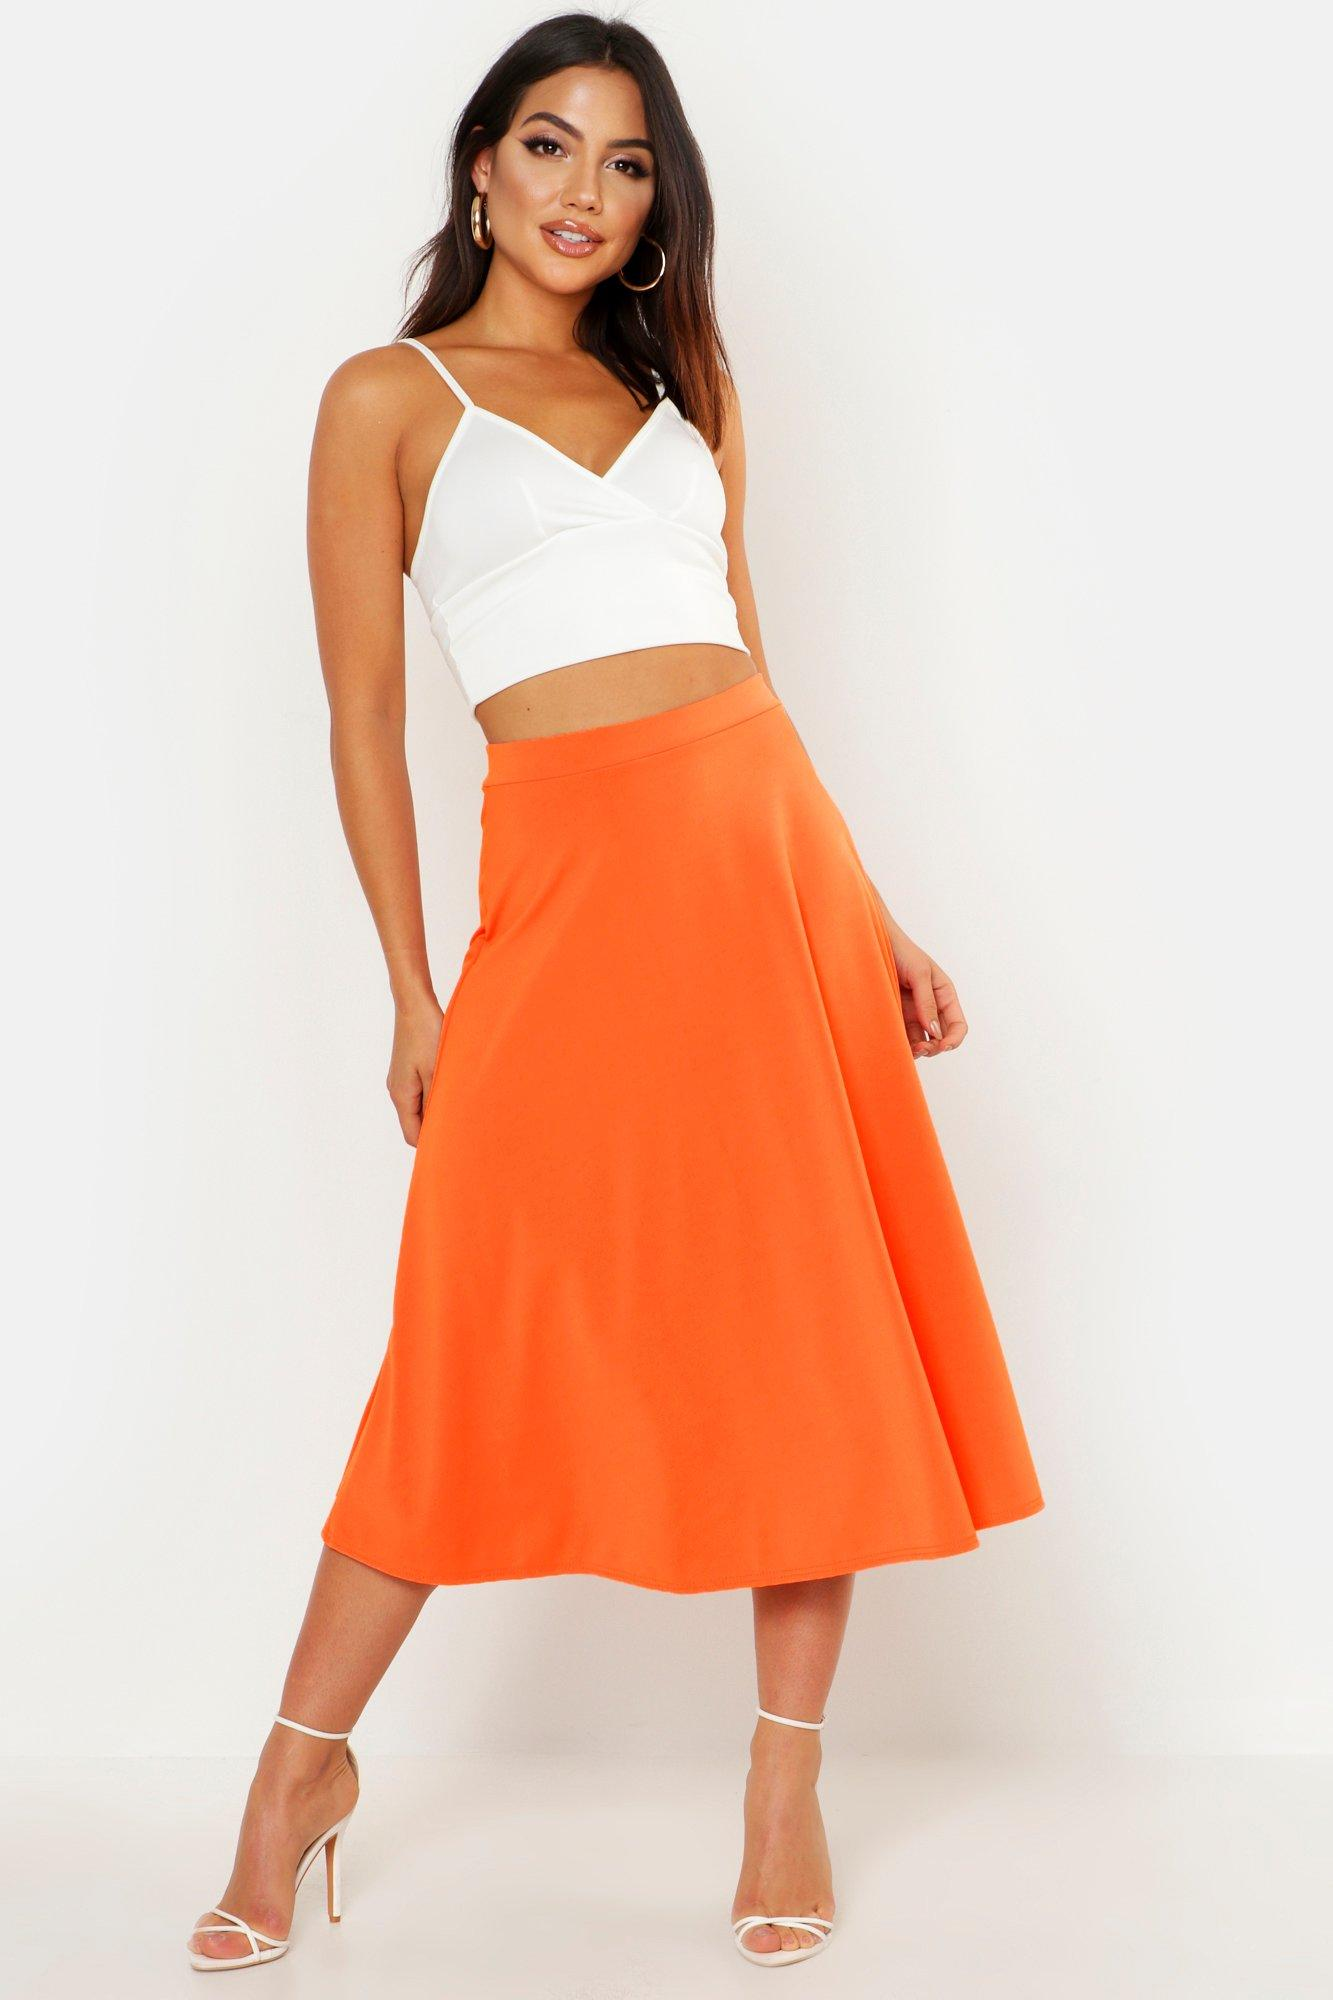 Stay ahead of the fashion curve in some of our perfectly cheap circle skirts. All our circle skirts are top quality. DressHead nail the trends before they are even trending.